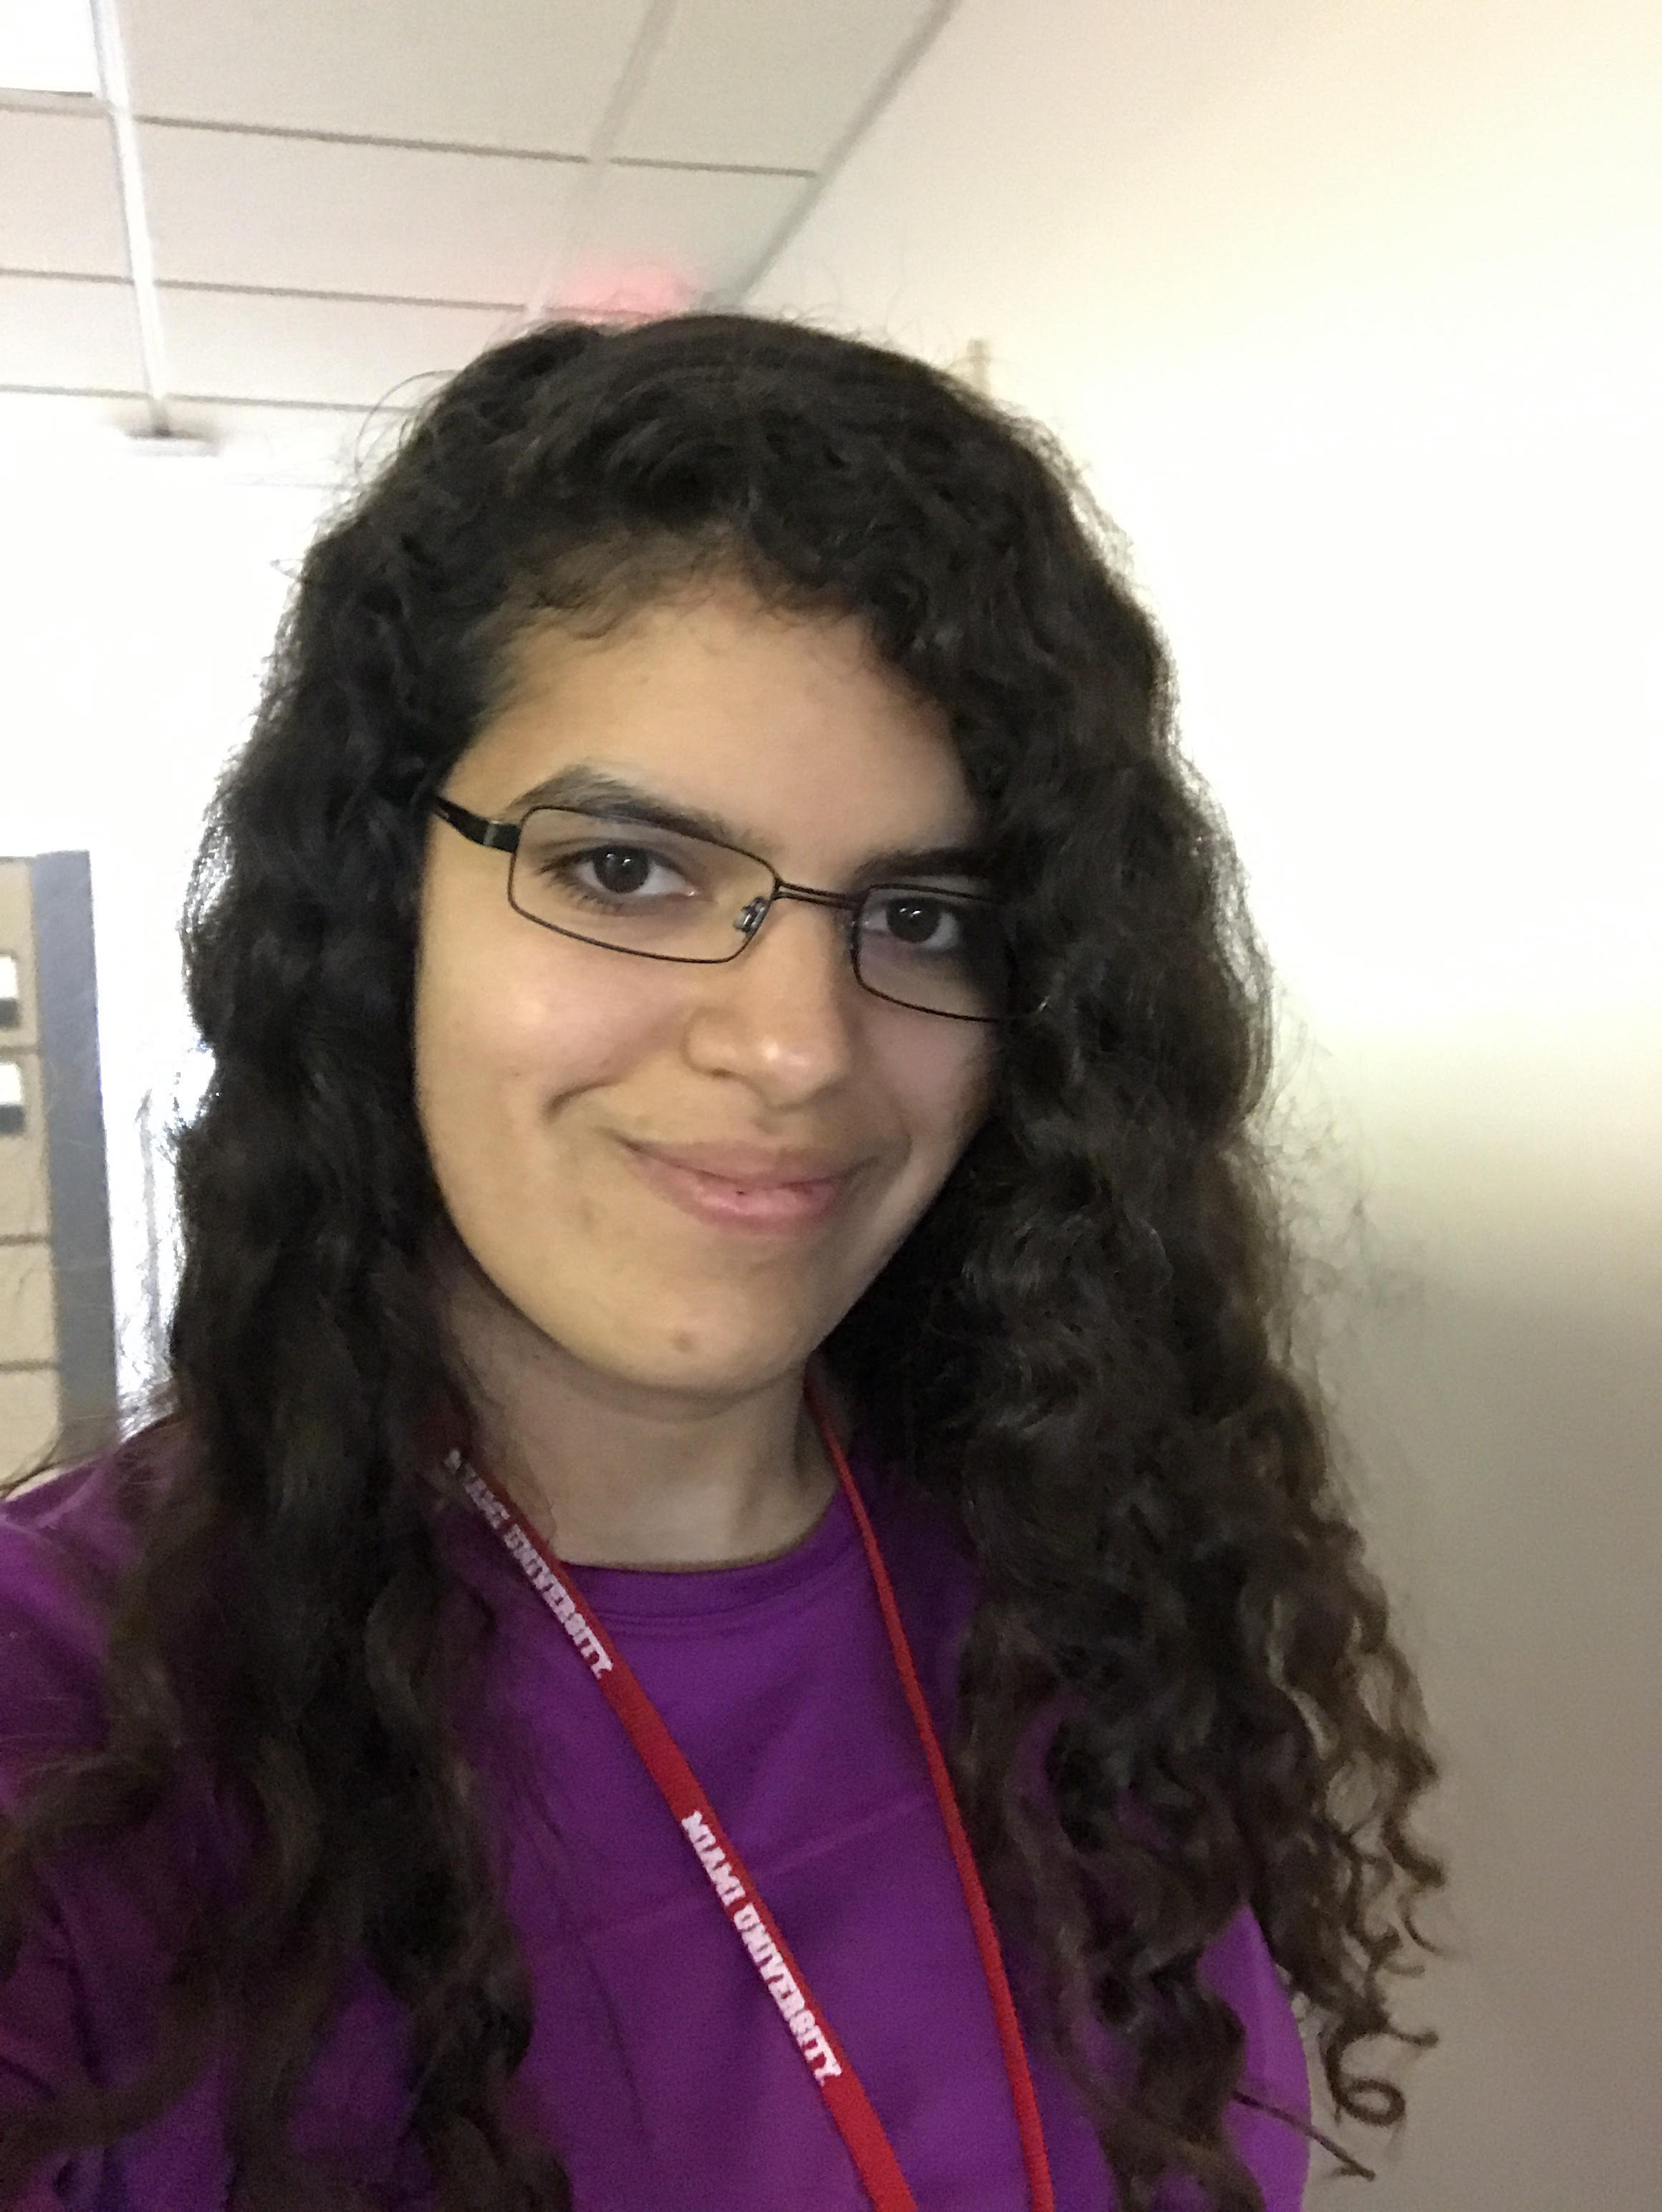 Sofia Olaya wearing a purple shirt, glasses and a red Miami lanyard